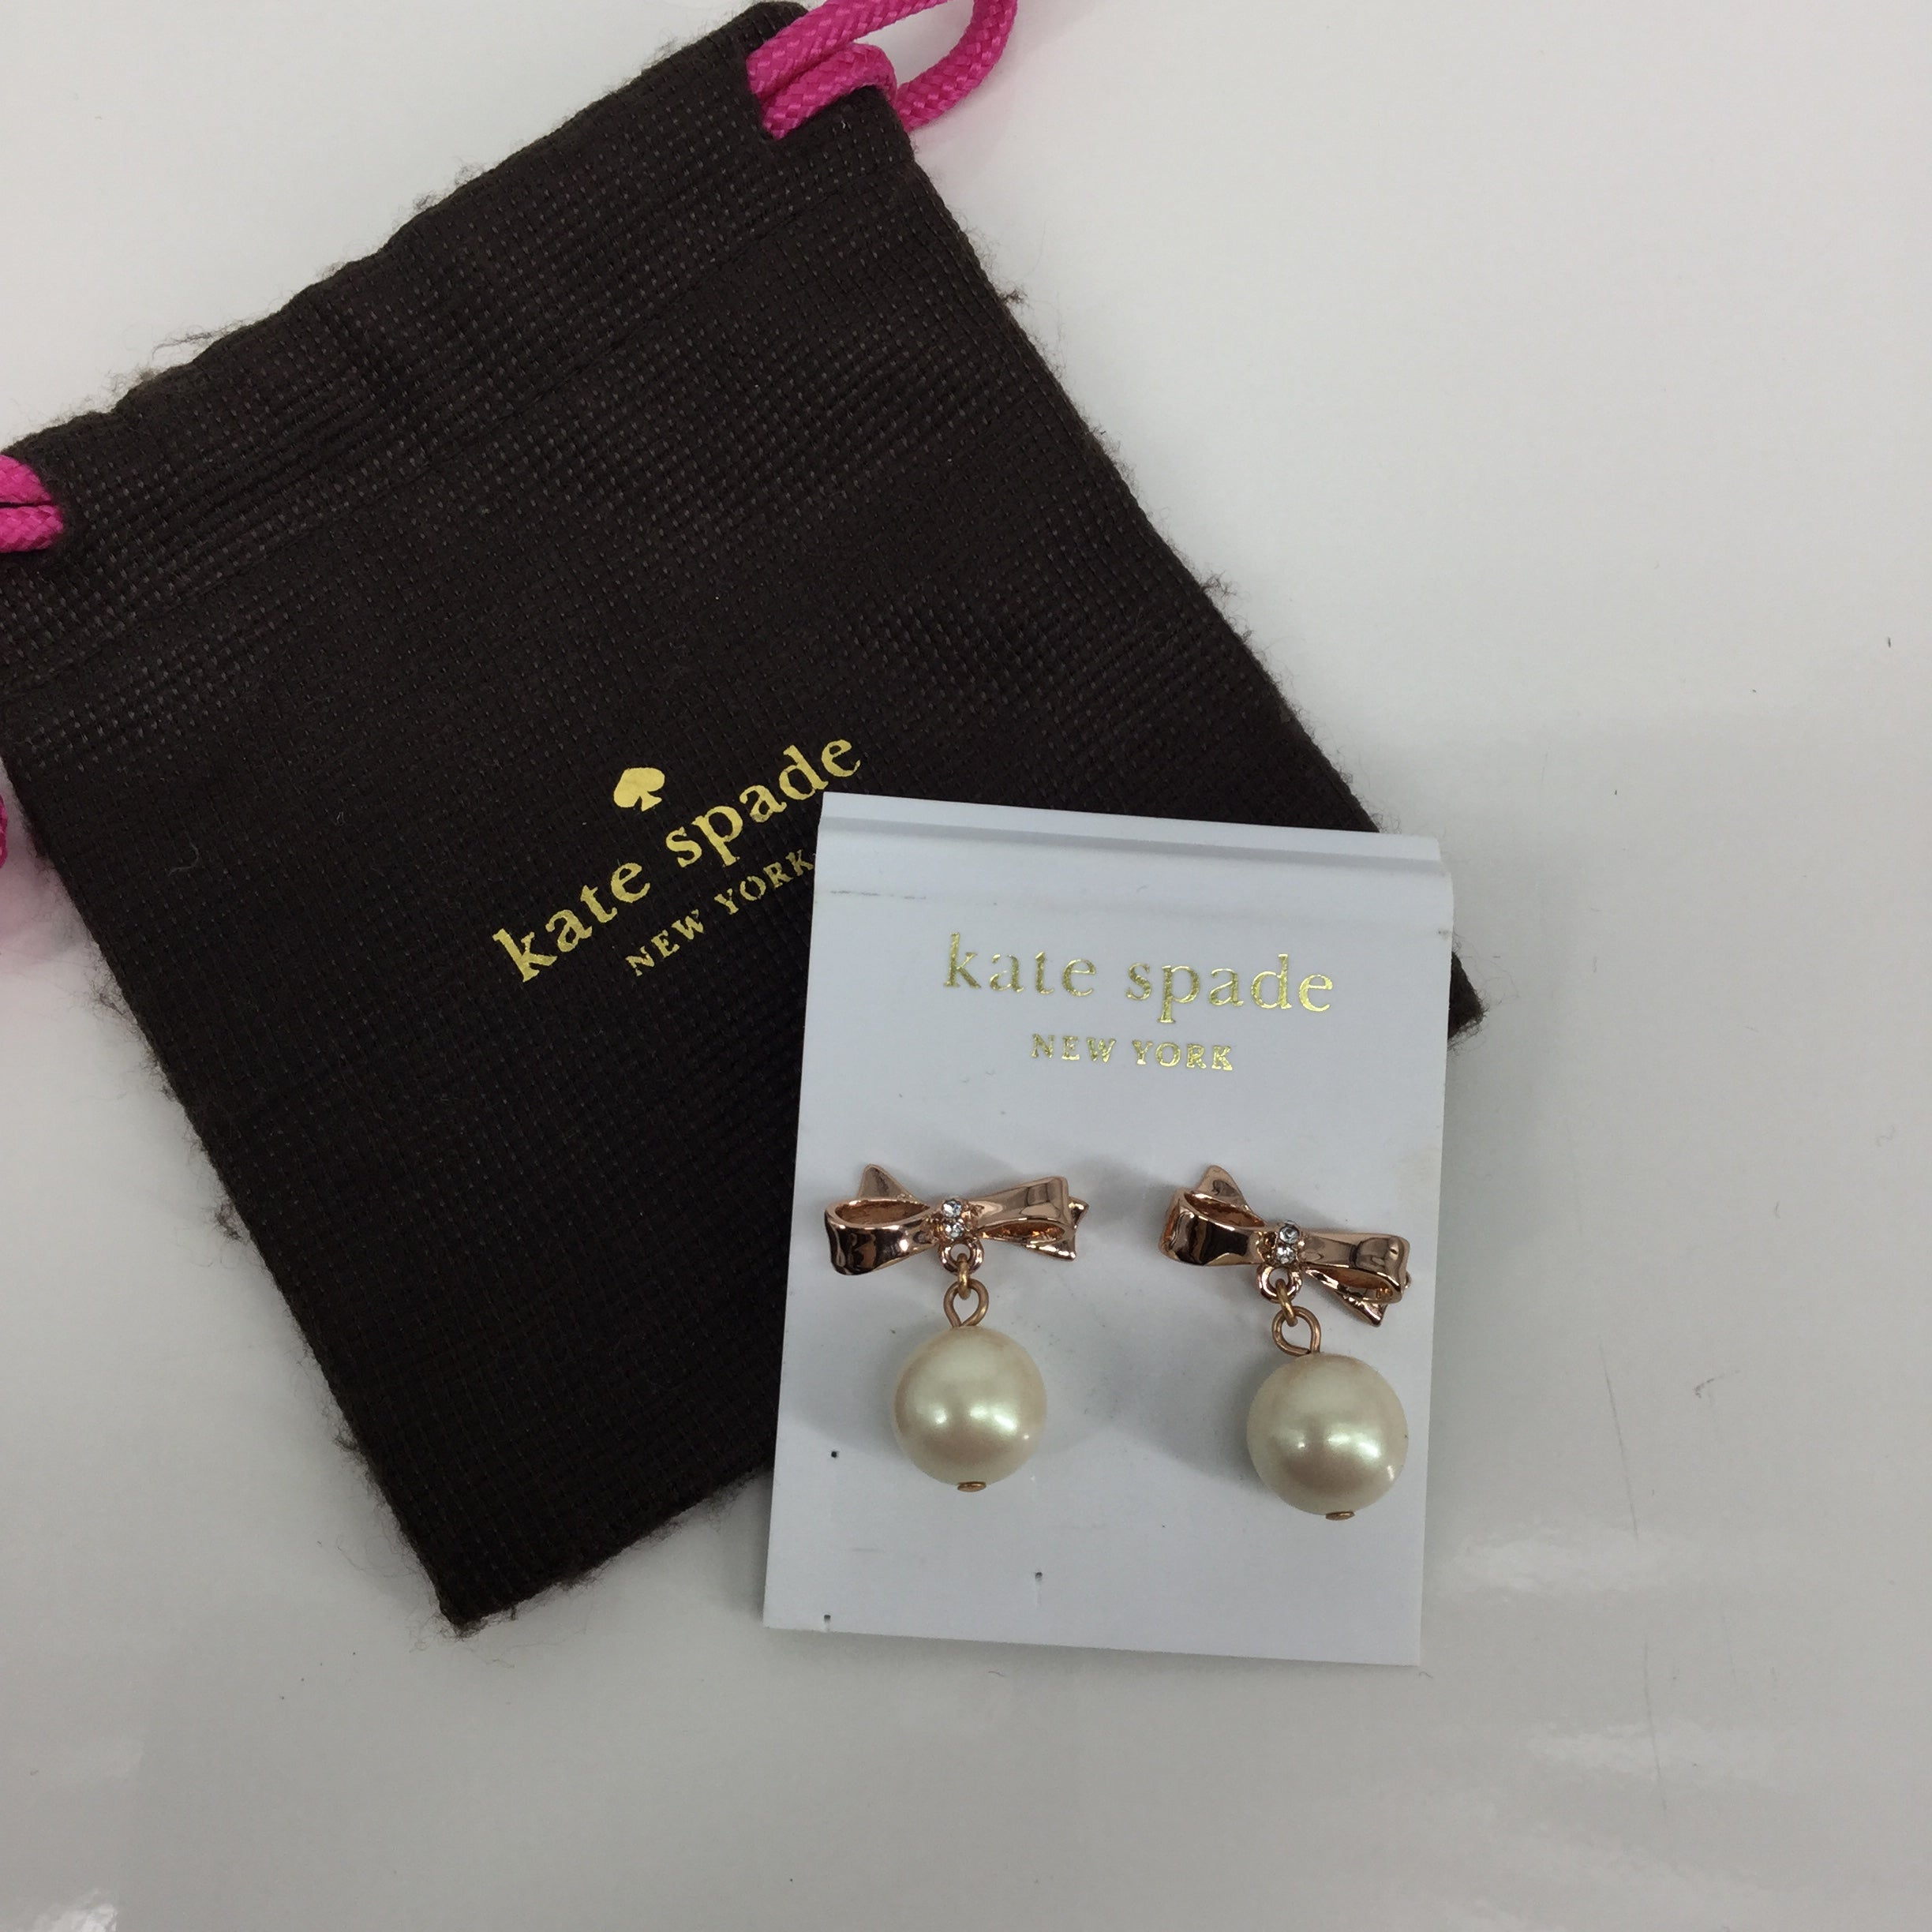 Kate Spade Earrings - GREAT FOR THE HOLIDAYS POST EARRING WITH CLEAR GEM IN MIDDLE OF A ROSE COLORED BOW AND A DANGLE PEARL!